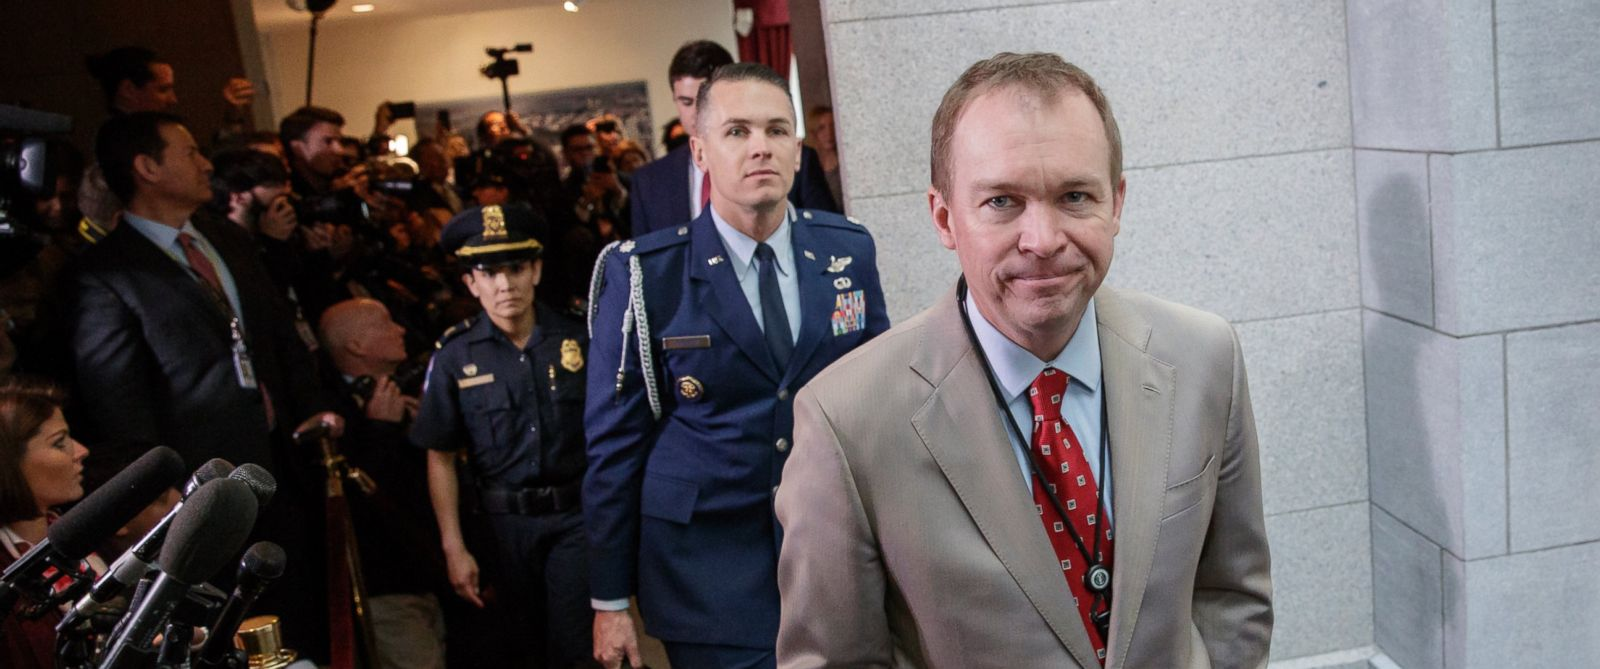 PHOTO: Budget Director Mick Mulvaney arrives on Capitol Hill in Washington, March 21, 2017, as President Donald Trump rallied support for the Republican health care overhaul by taking his case directly to GOP lawmaker.